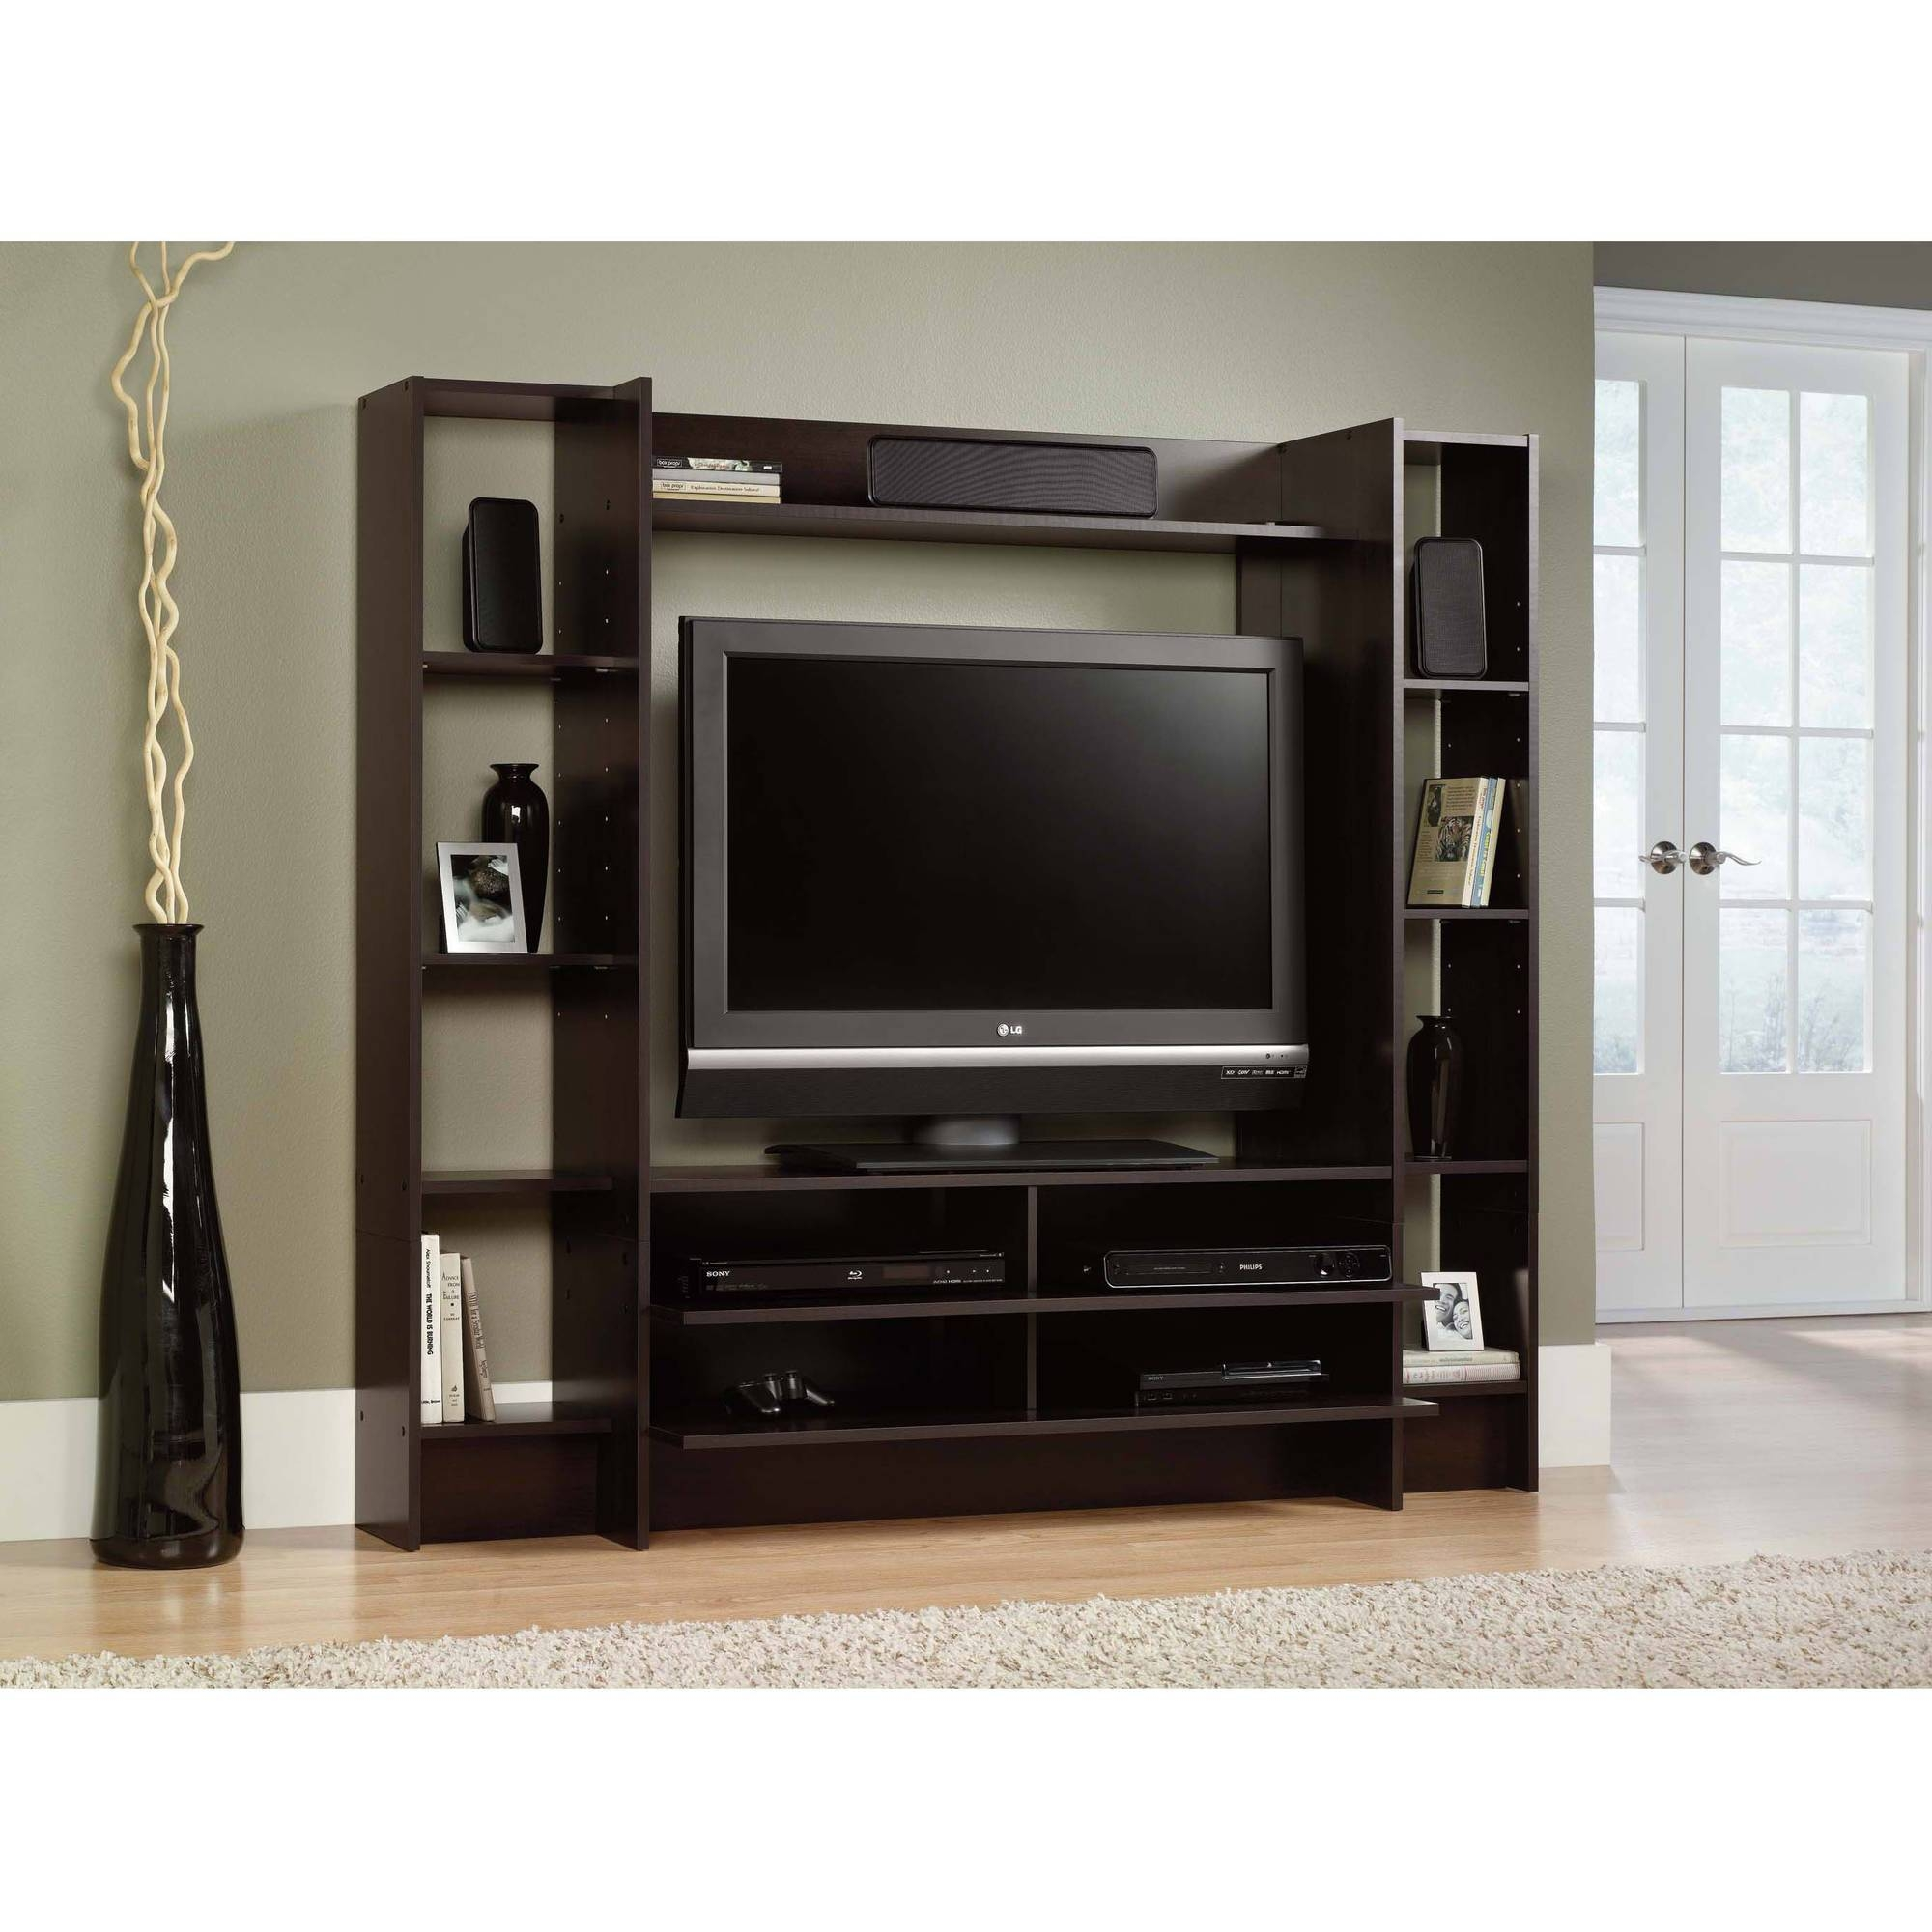 Wall Units: Awesome Tv Wall Entertainment Unit Wall Mounted Pertaining To Wall Display Units And Tv Cabinets (View 7 of 15)